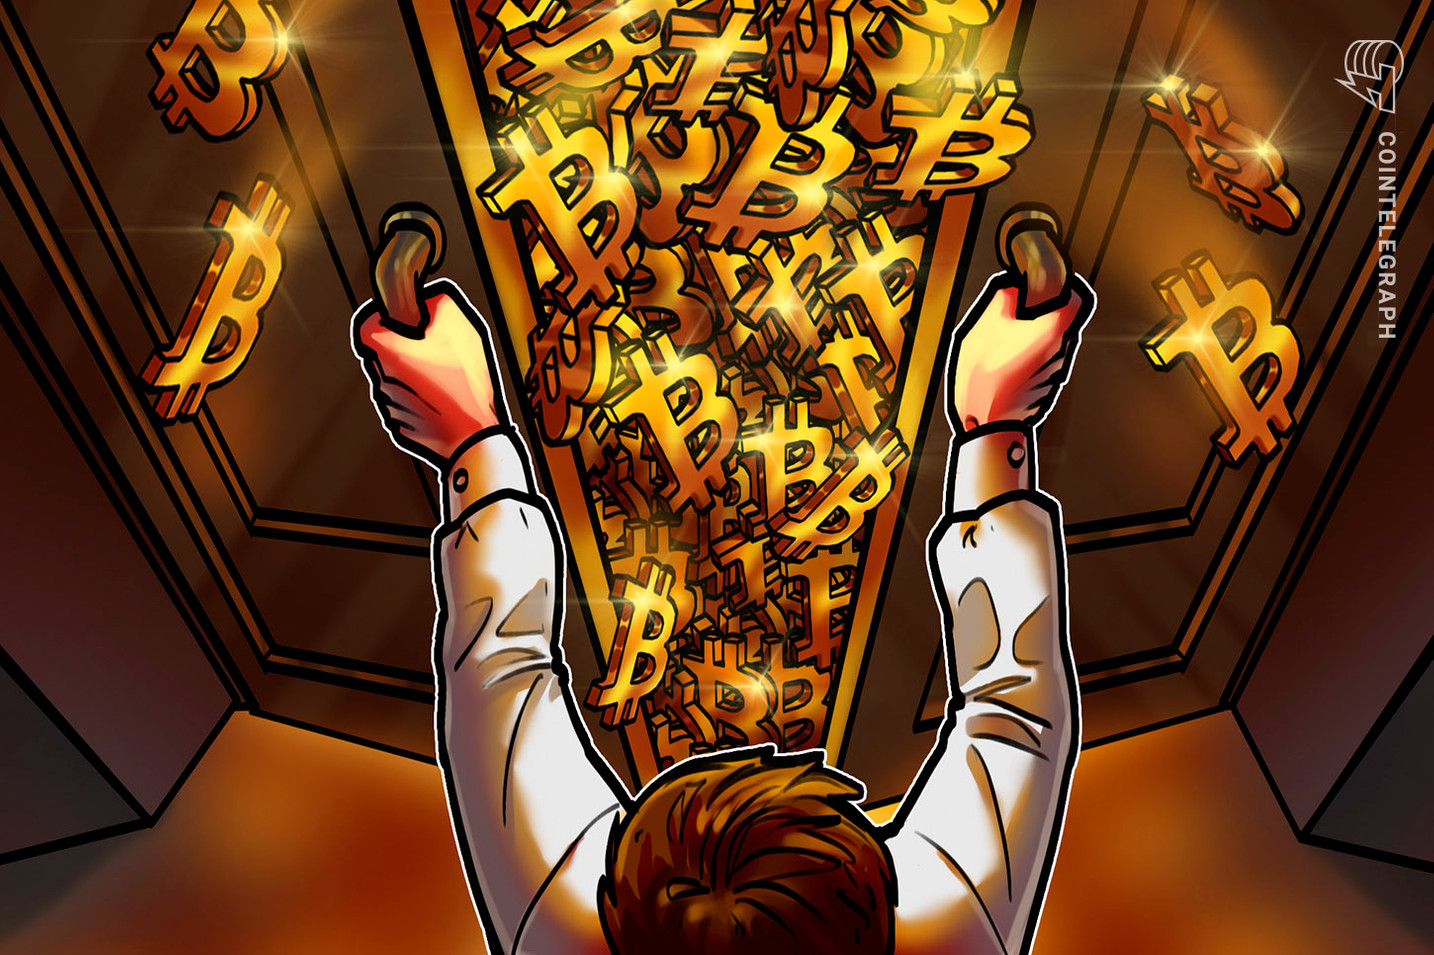 Sunday's GBTC unlock held more shares than the remaining events combined